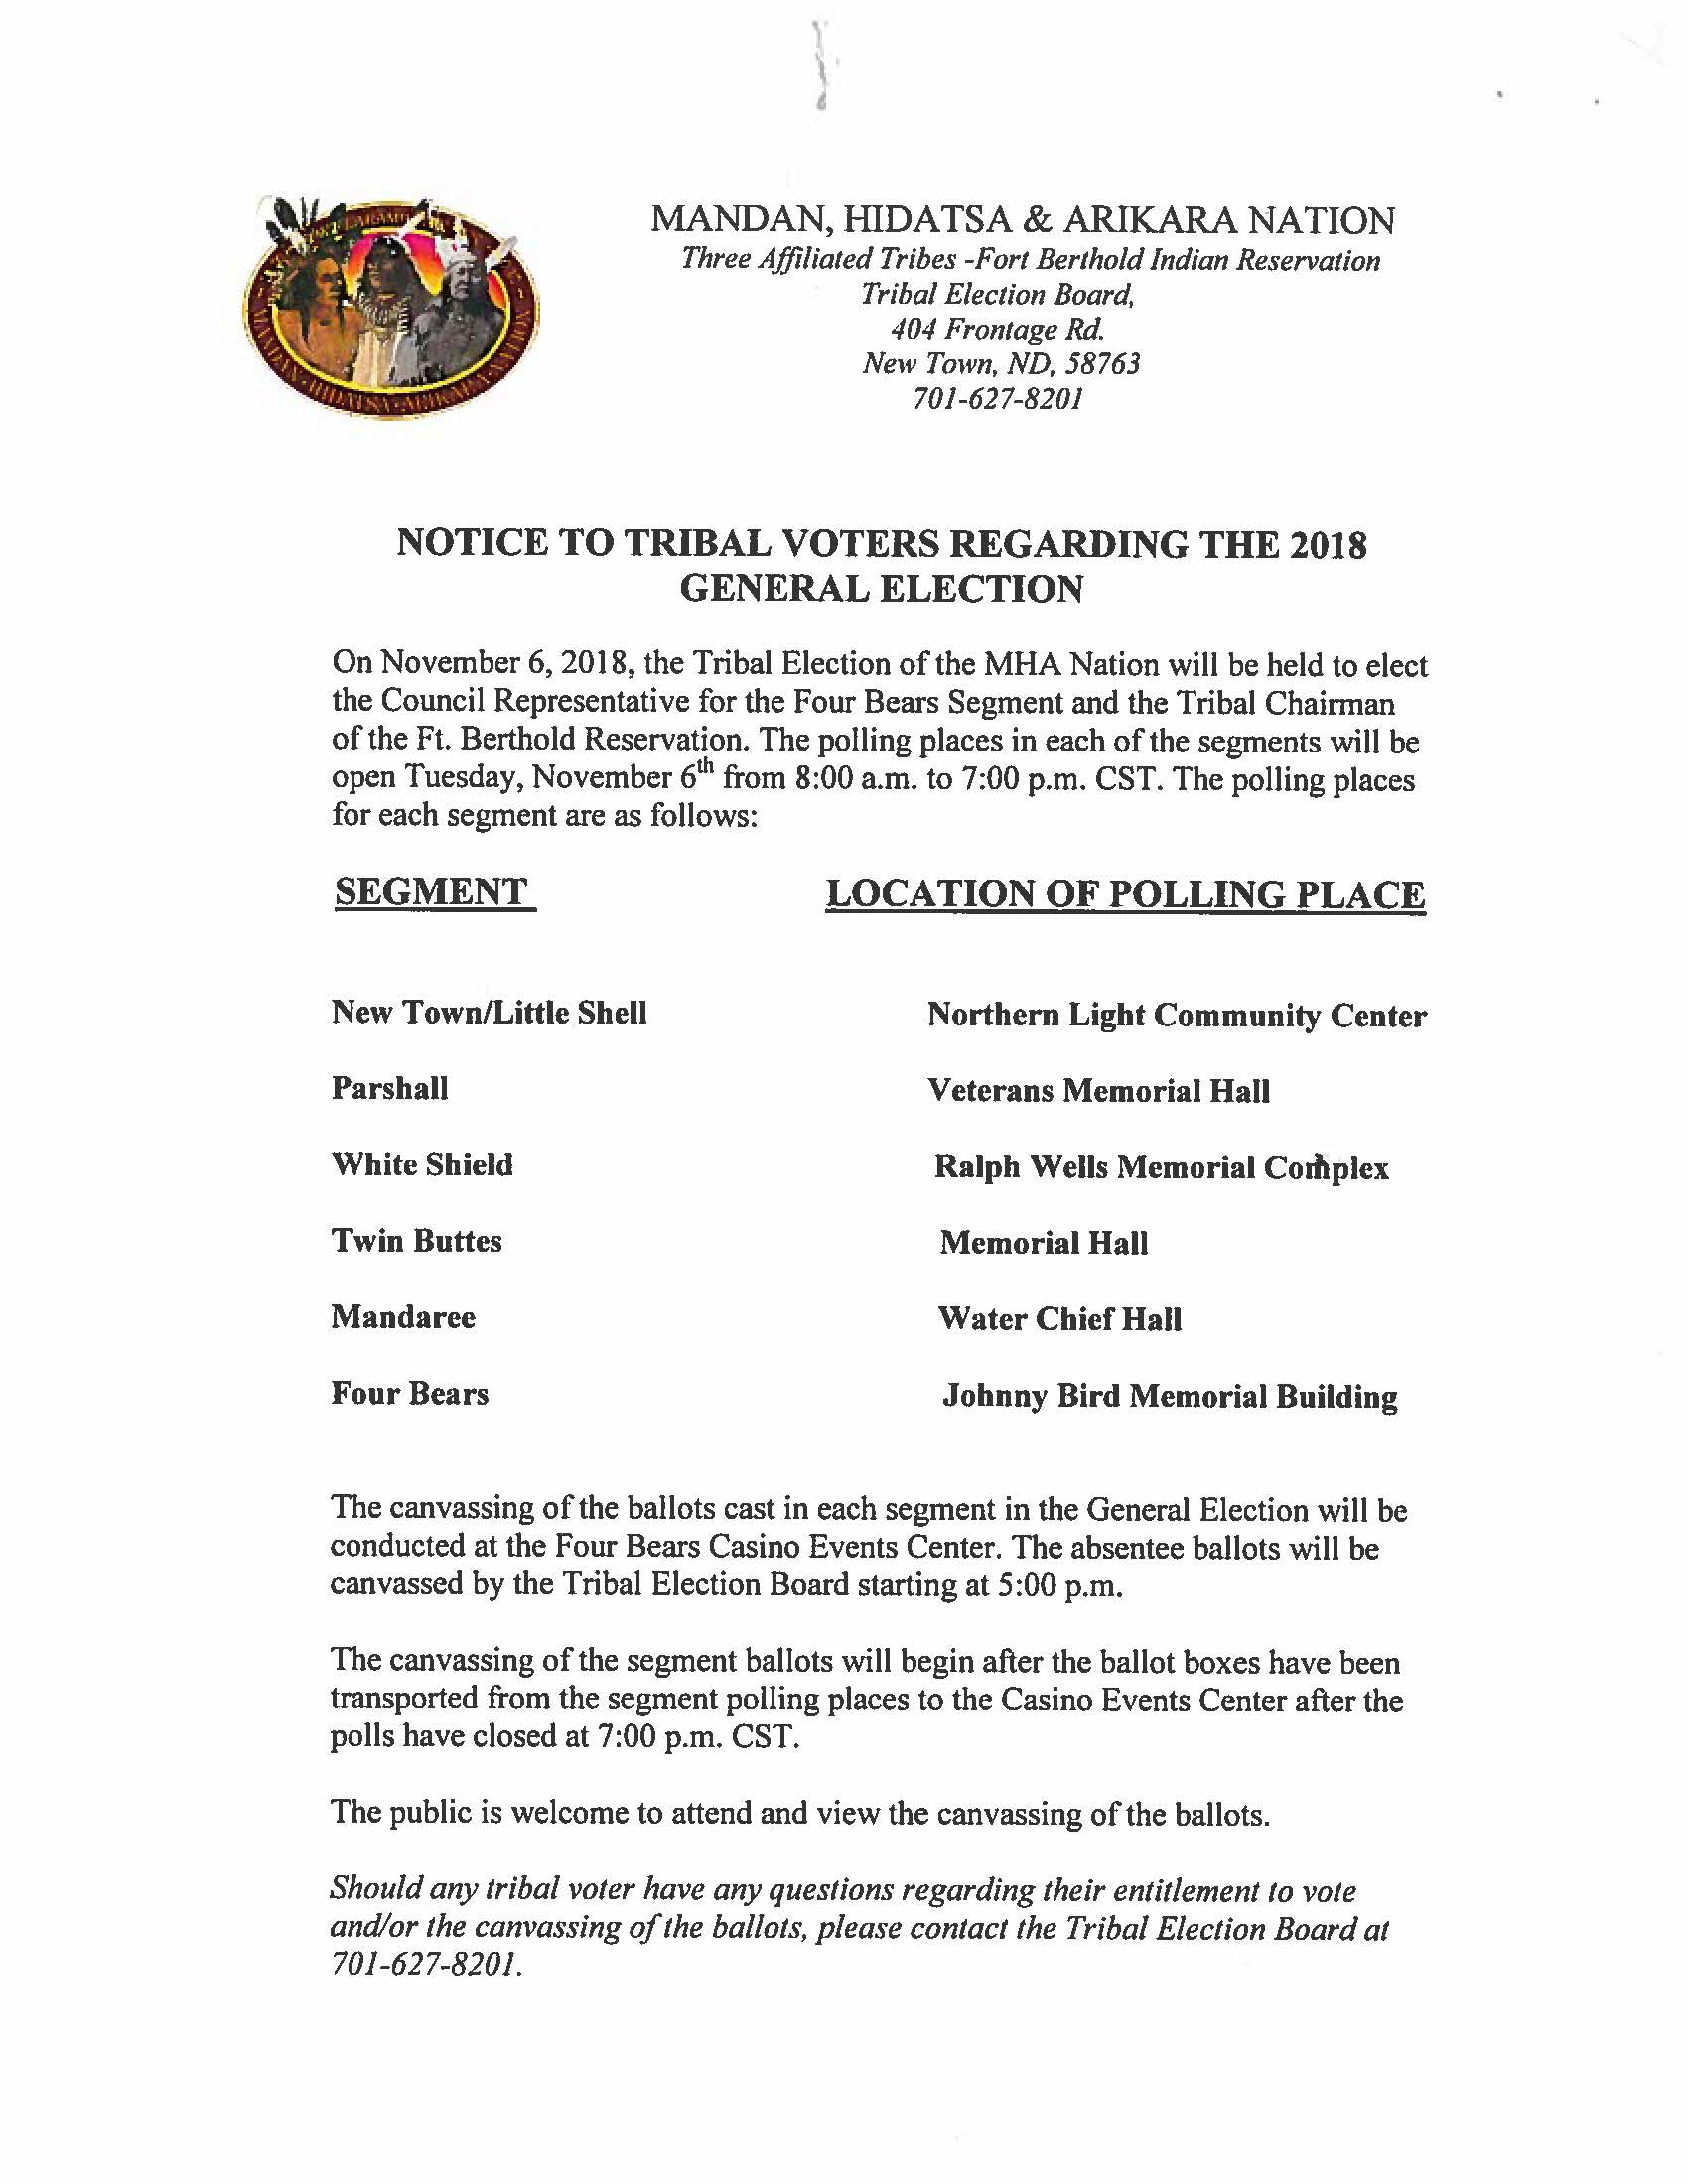 Notice to Tribal Voters Regarding the 2018 General Election.jpg